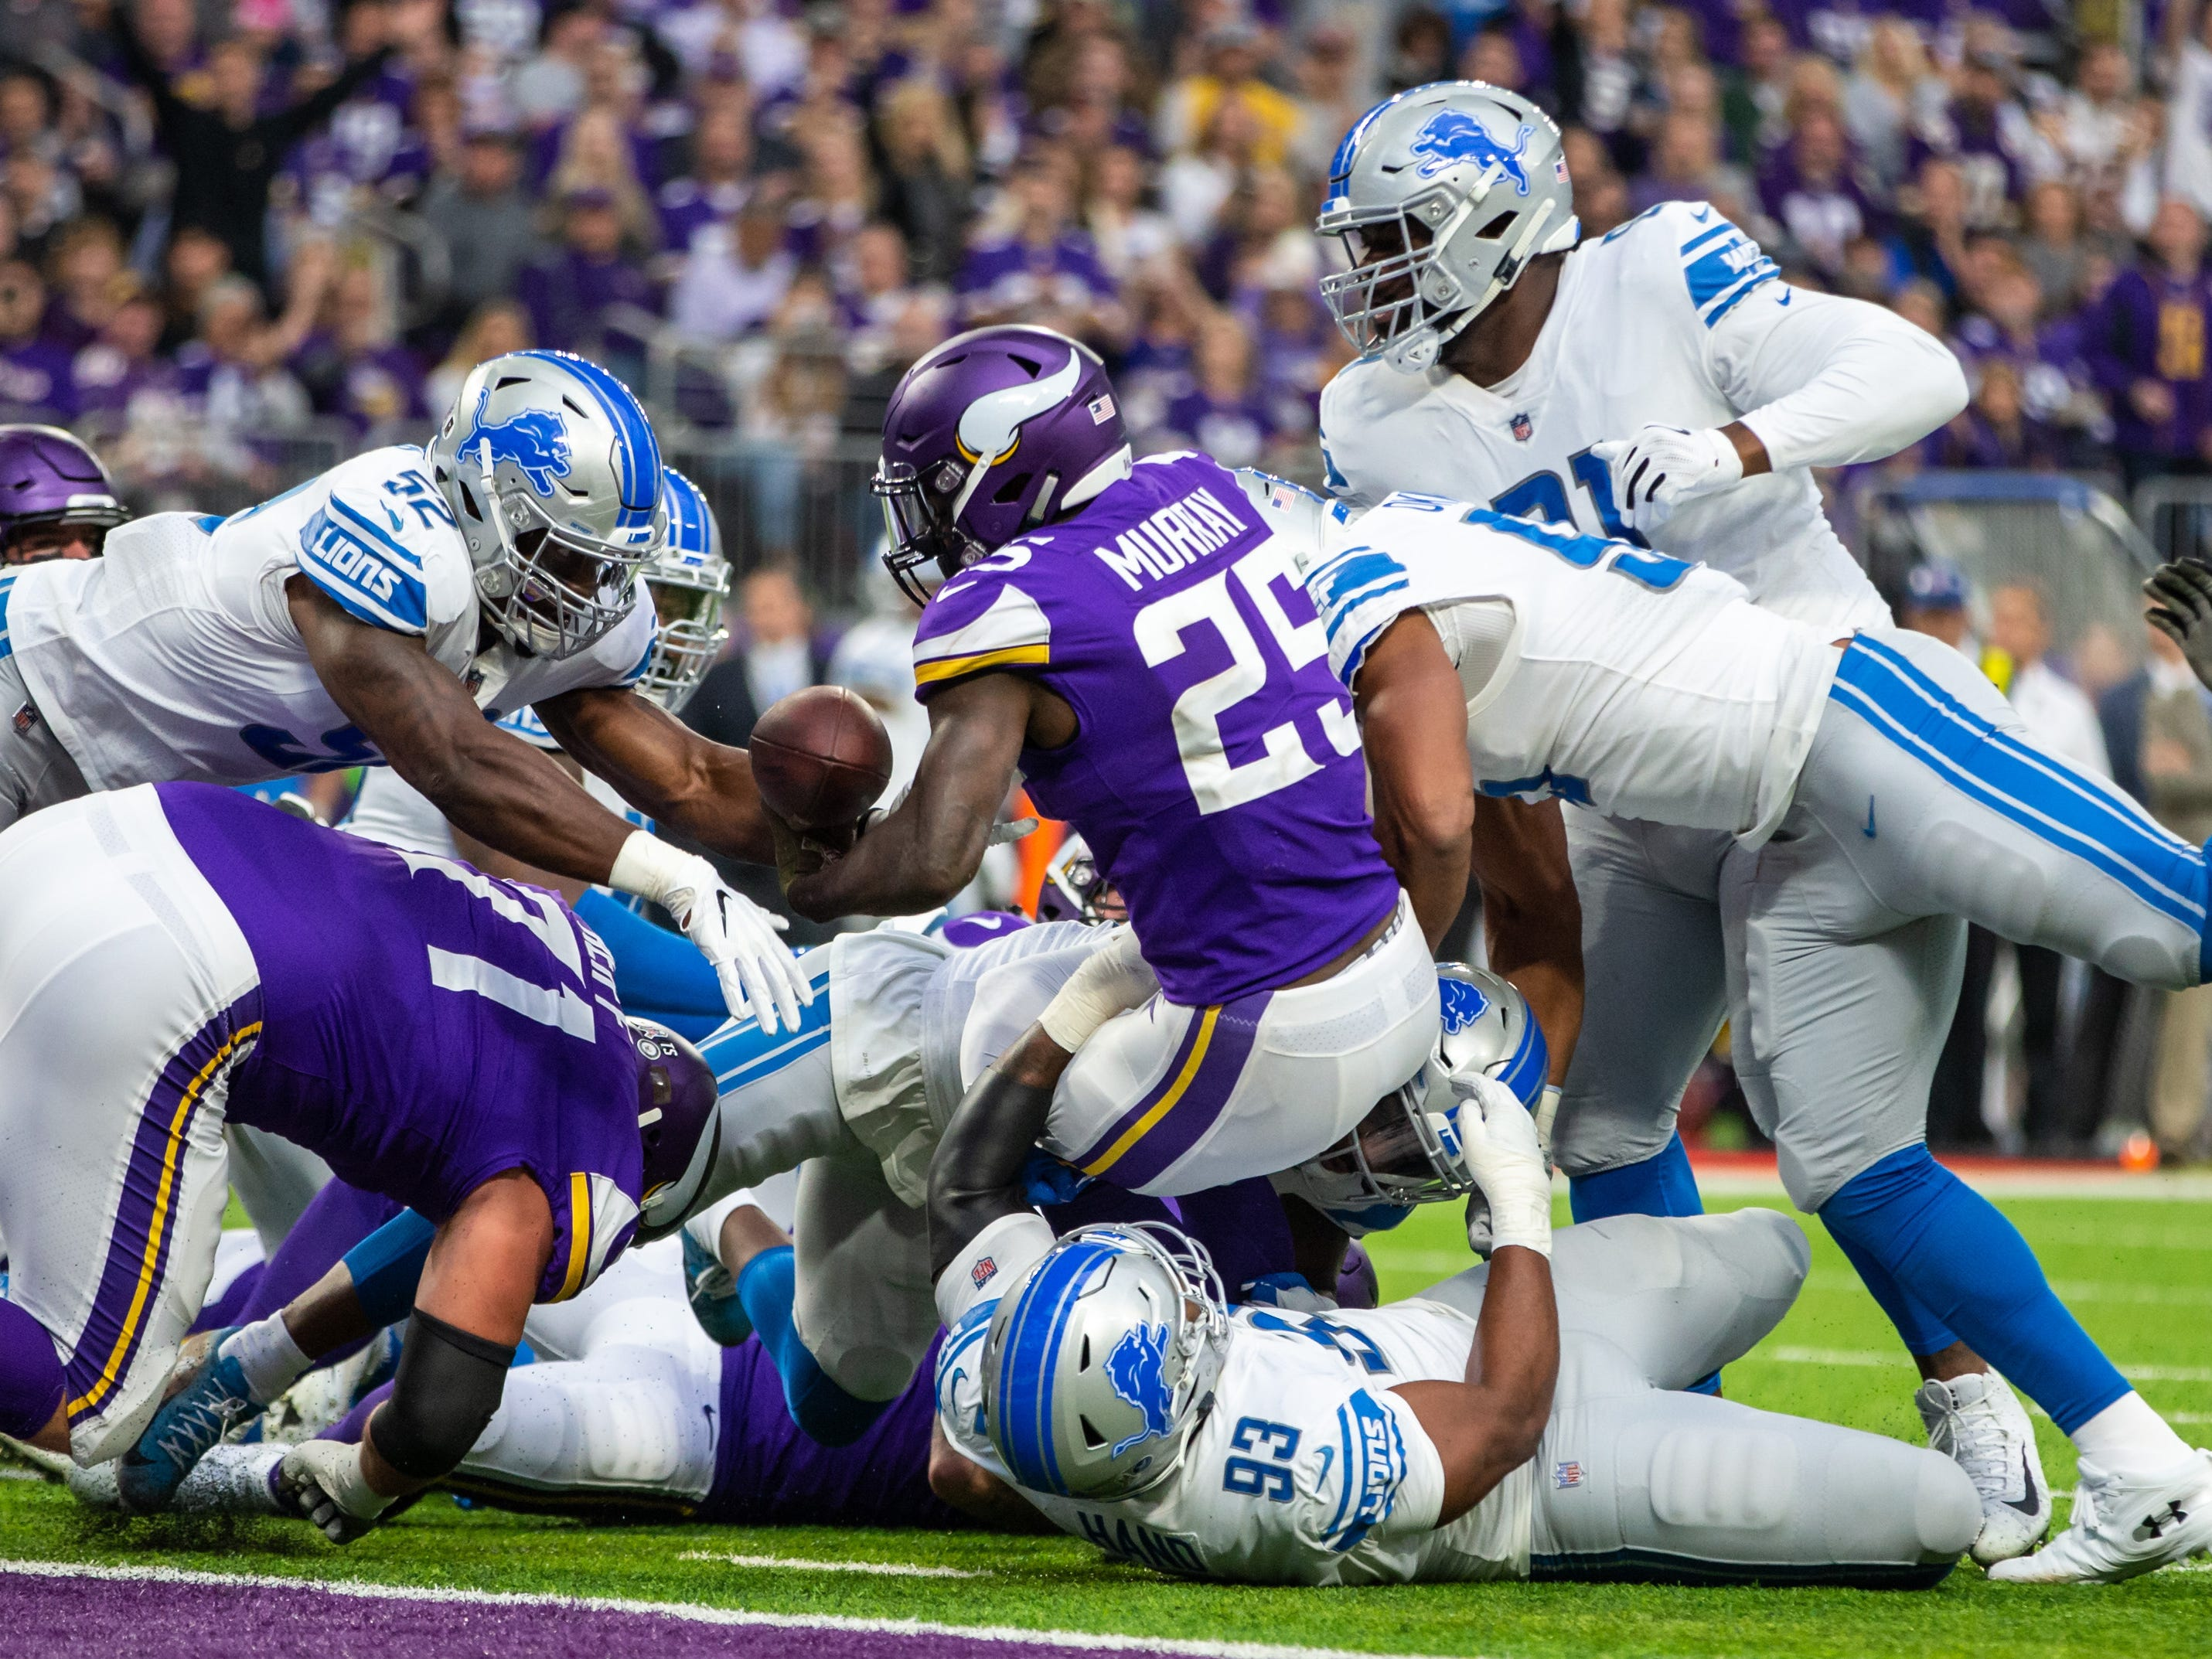 Minnesota Vikings running back Latavius Murray (25) finds the end zone during the first quarter against the Detroit Lions at U.S. Bank Stadium.